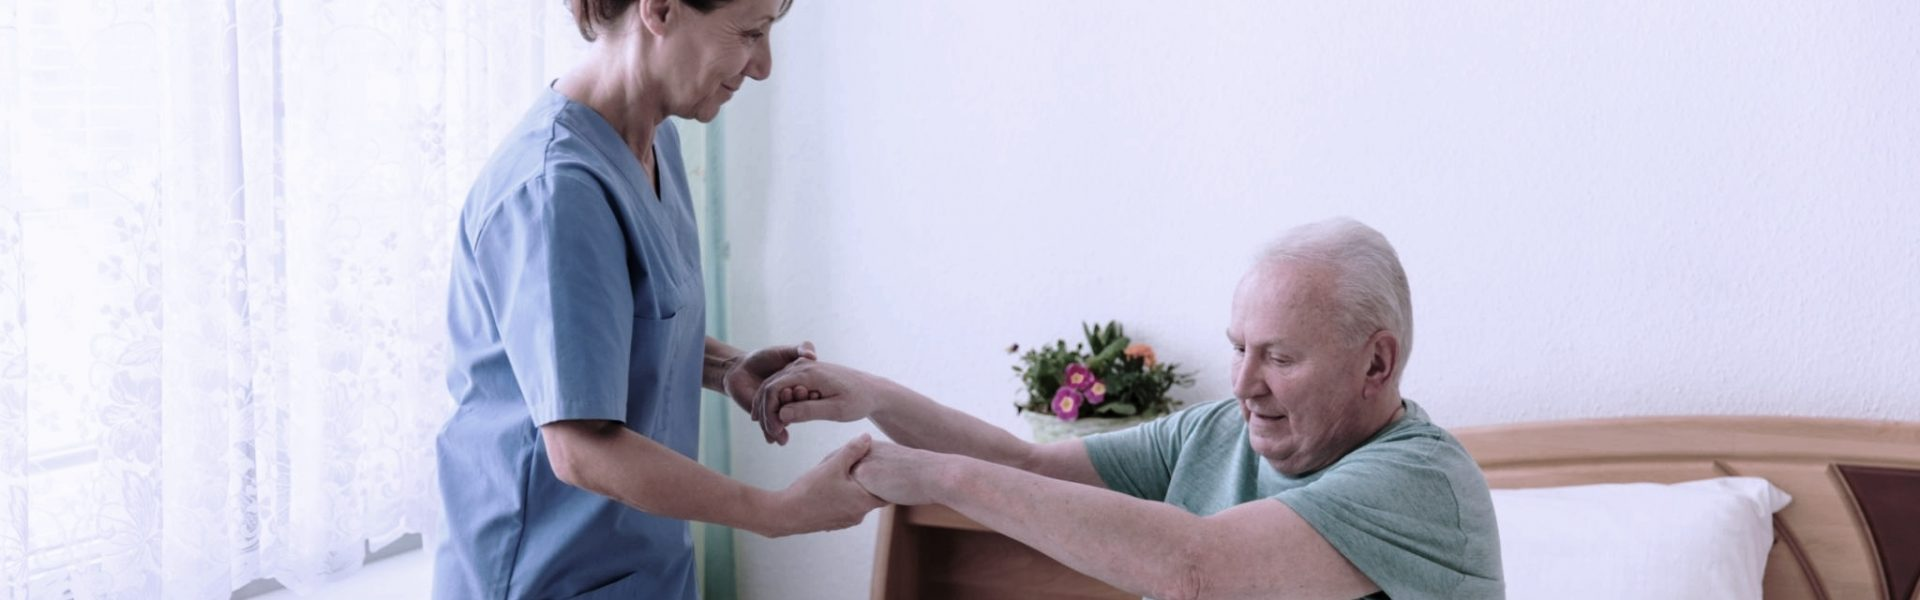 Female caregiver helping senior man